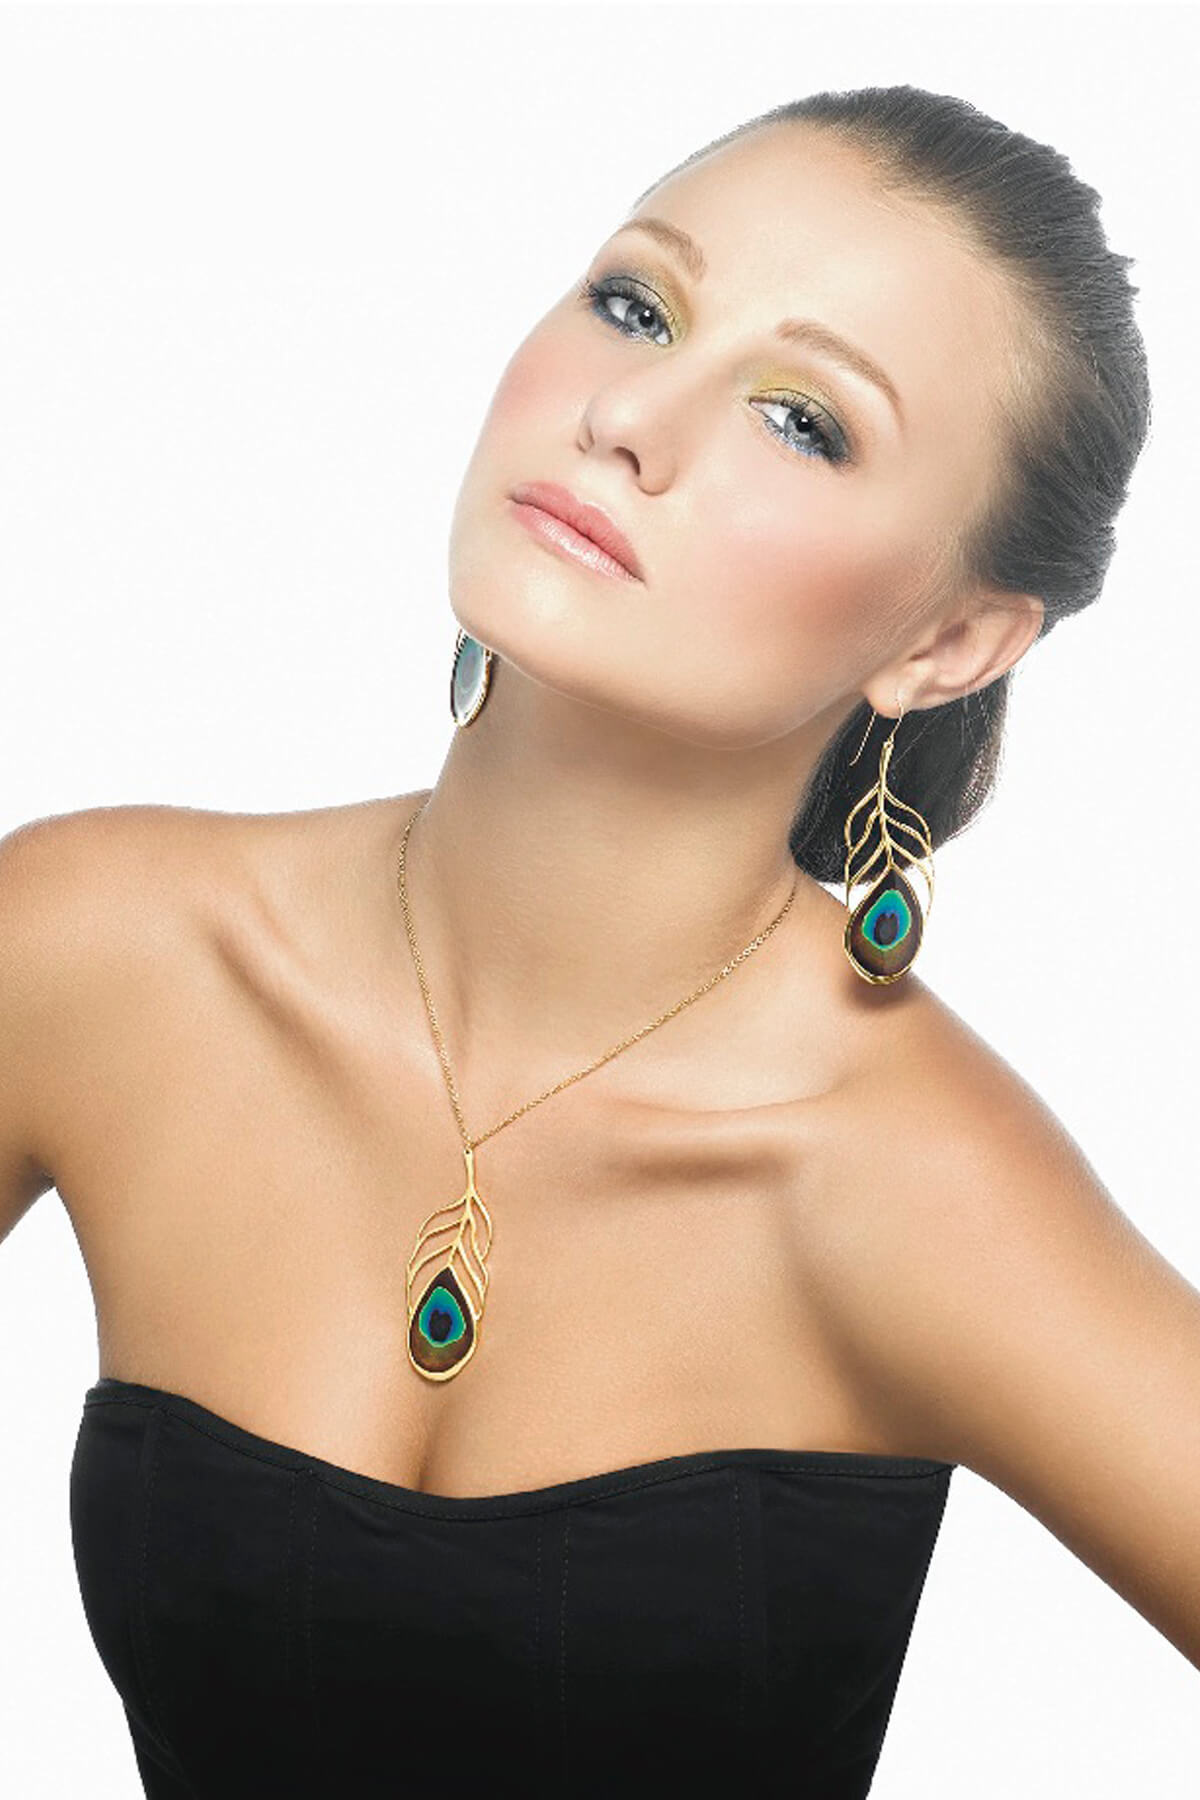 Handmade Vermeil Peacock Eye Feather Long Earrings and Necklace